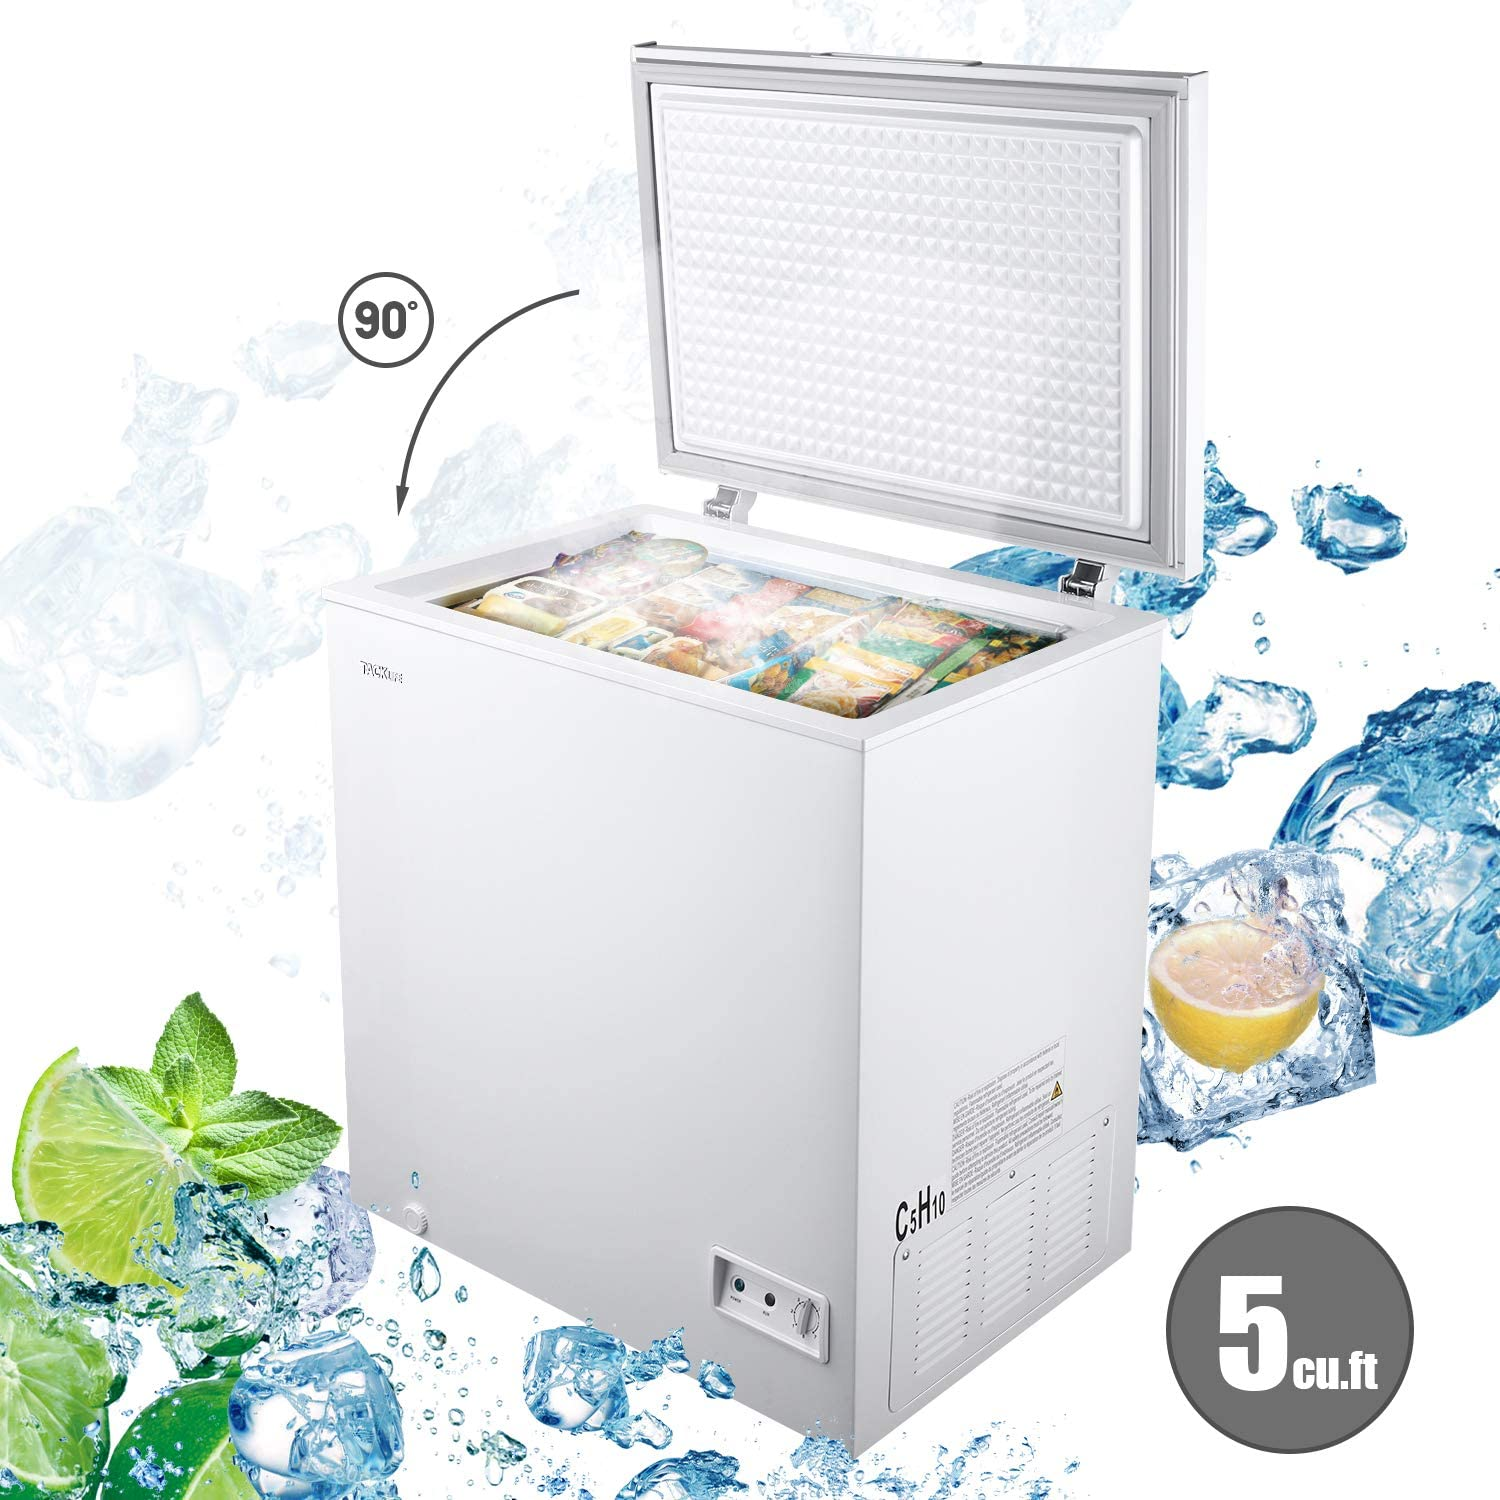 TACKLIFE 5 Cu.ft Chest Freezer review 2021